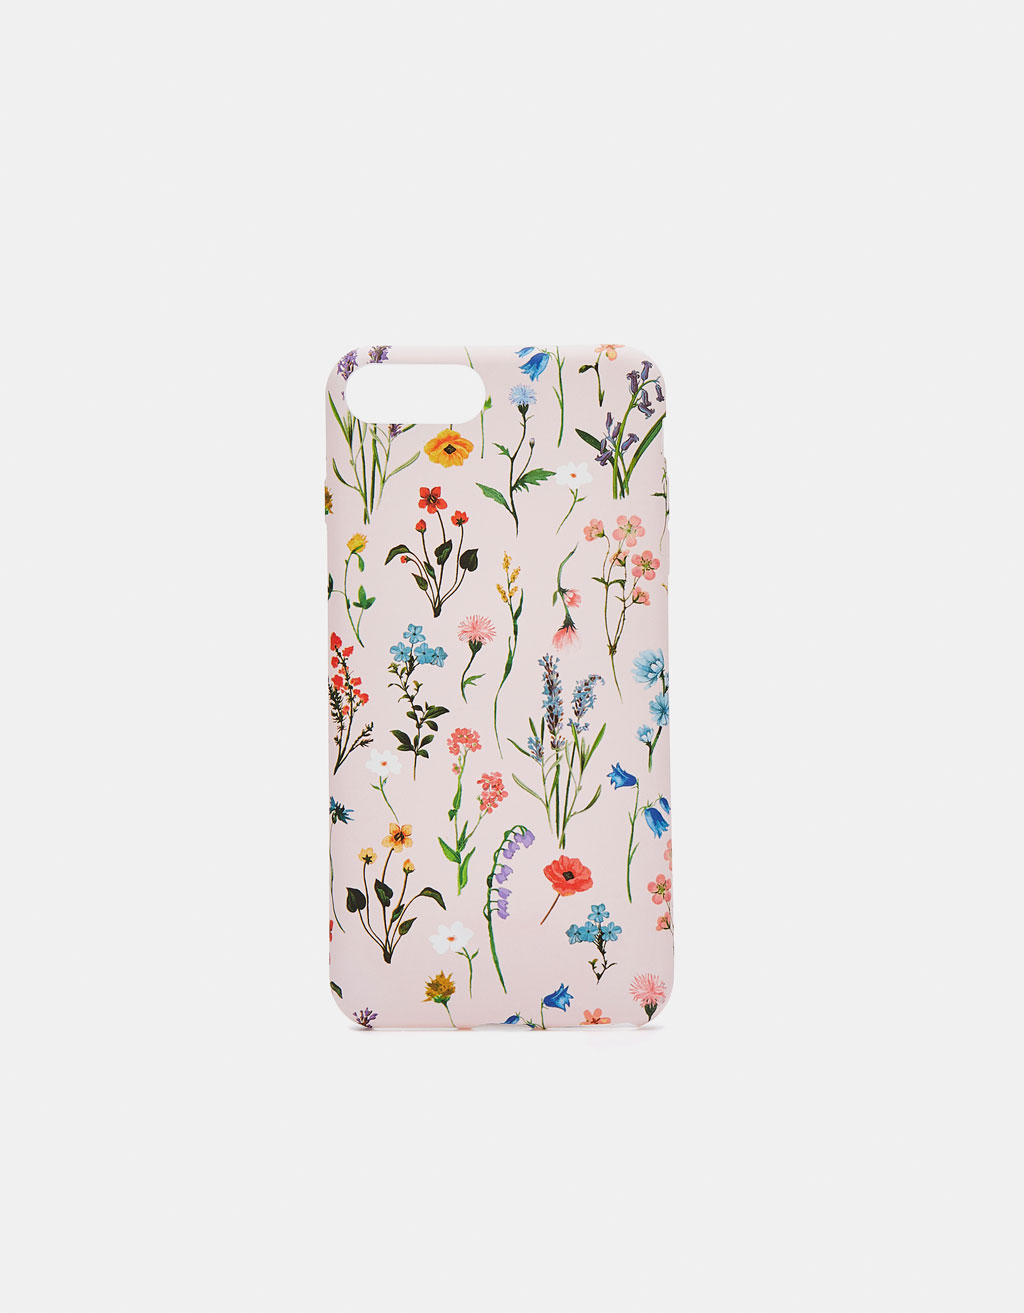 Floral iPhone 6plus/7plus/8plus case